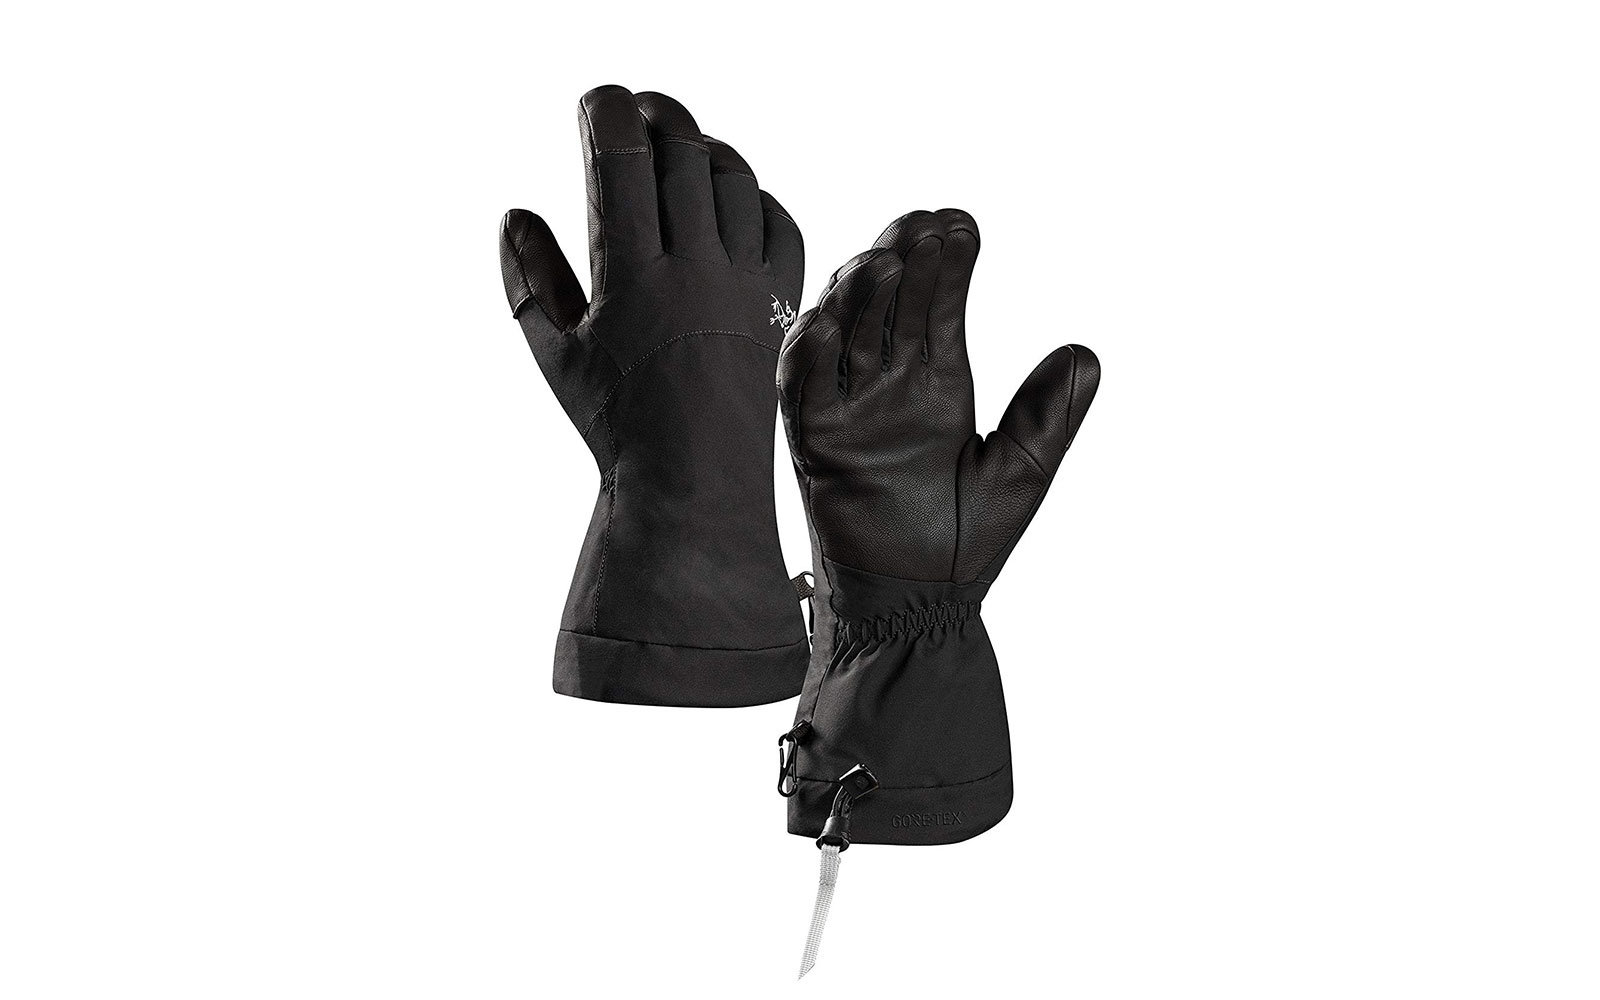 Arc'teryx Fission winter gloves